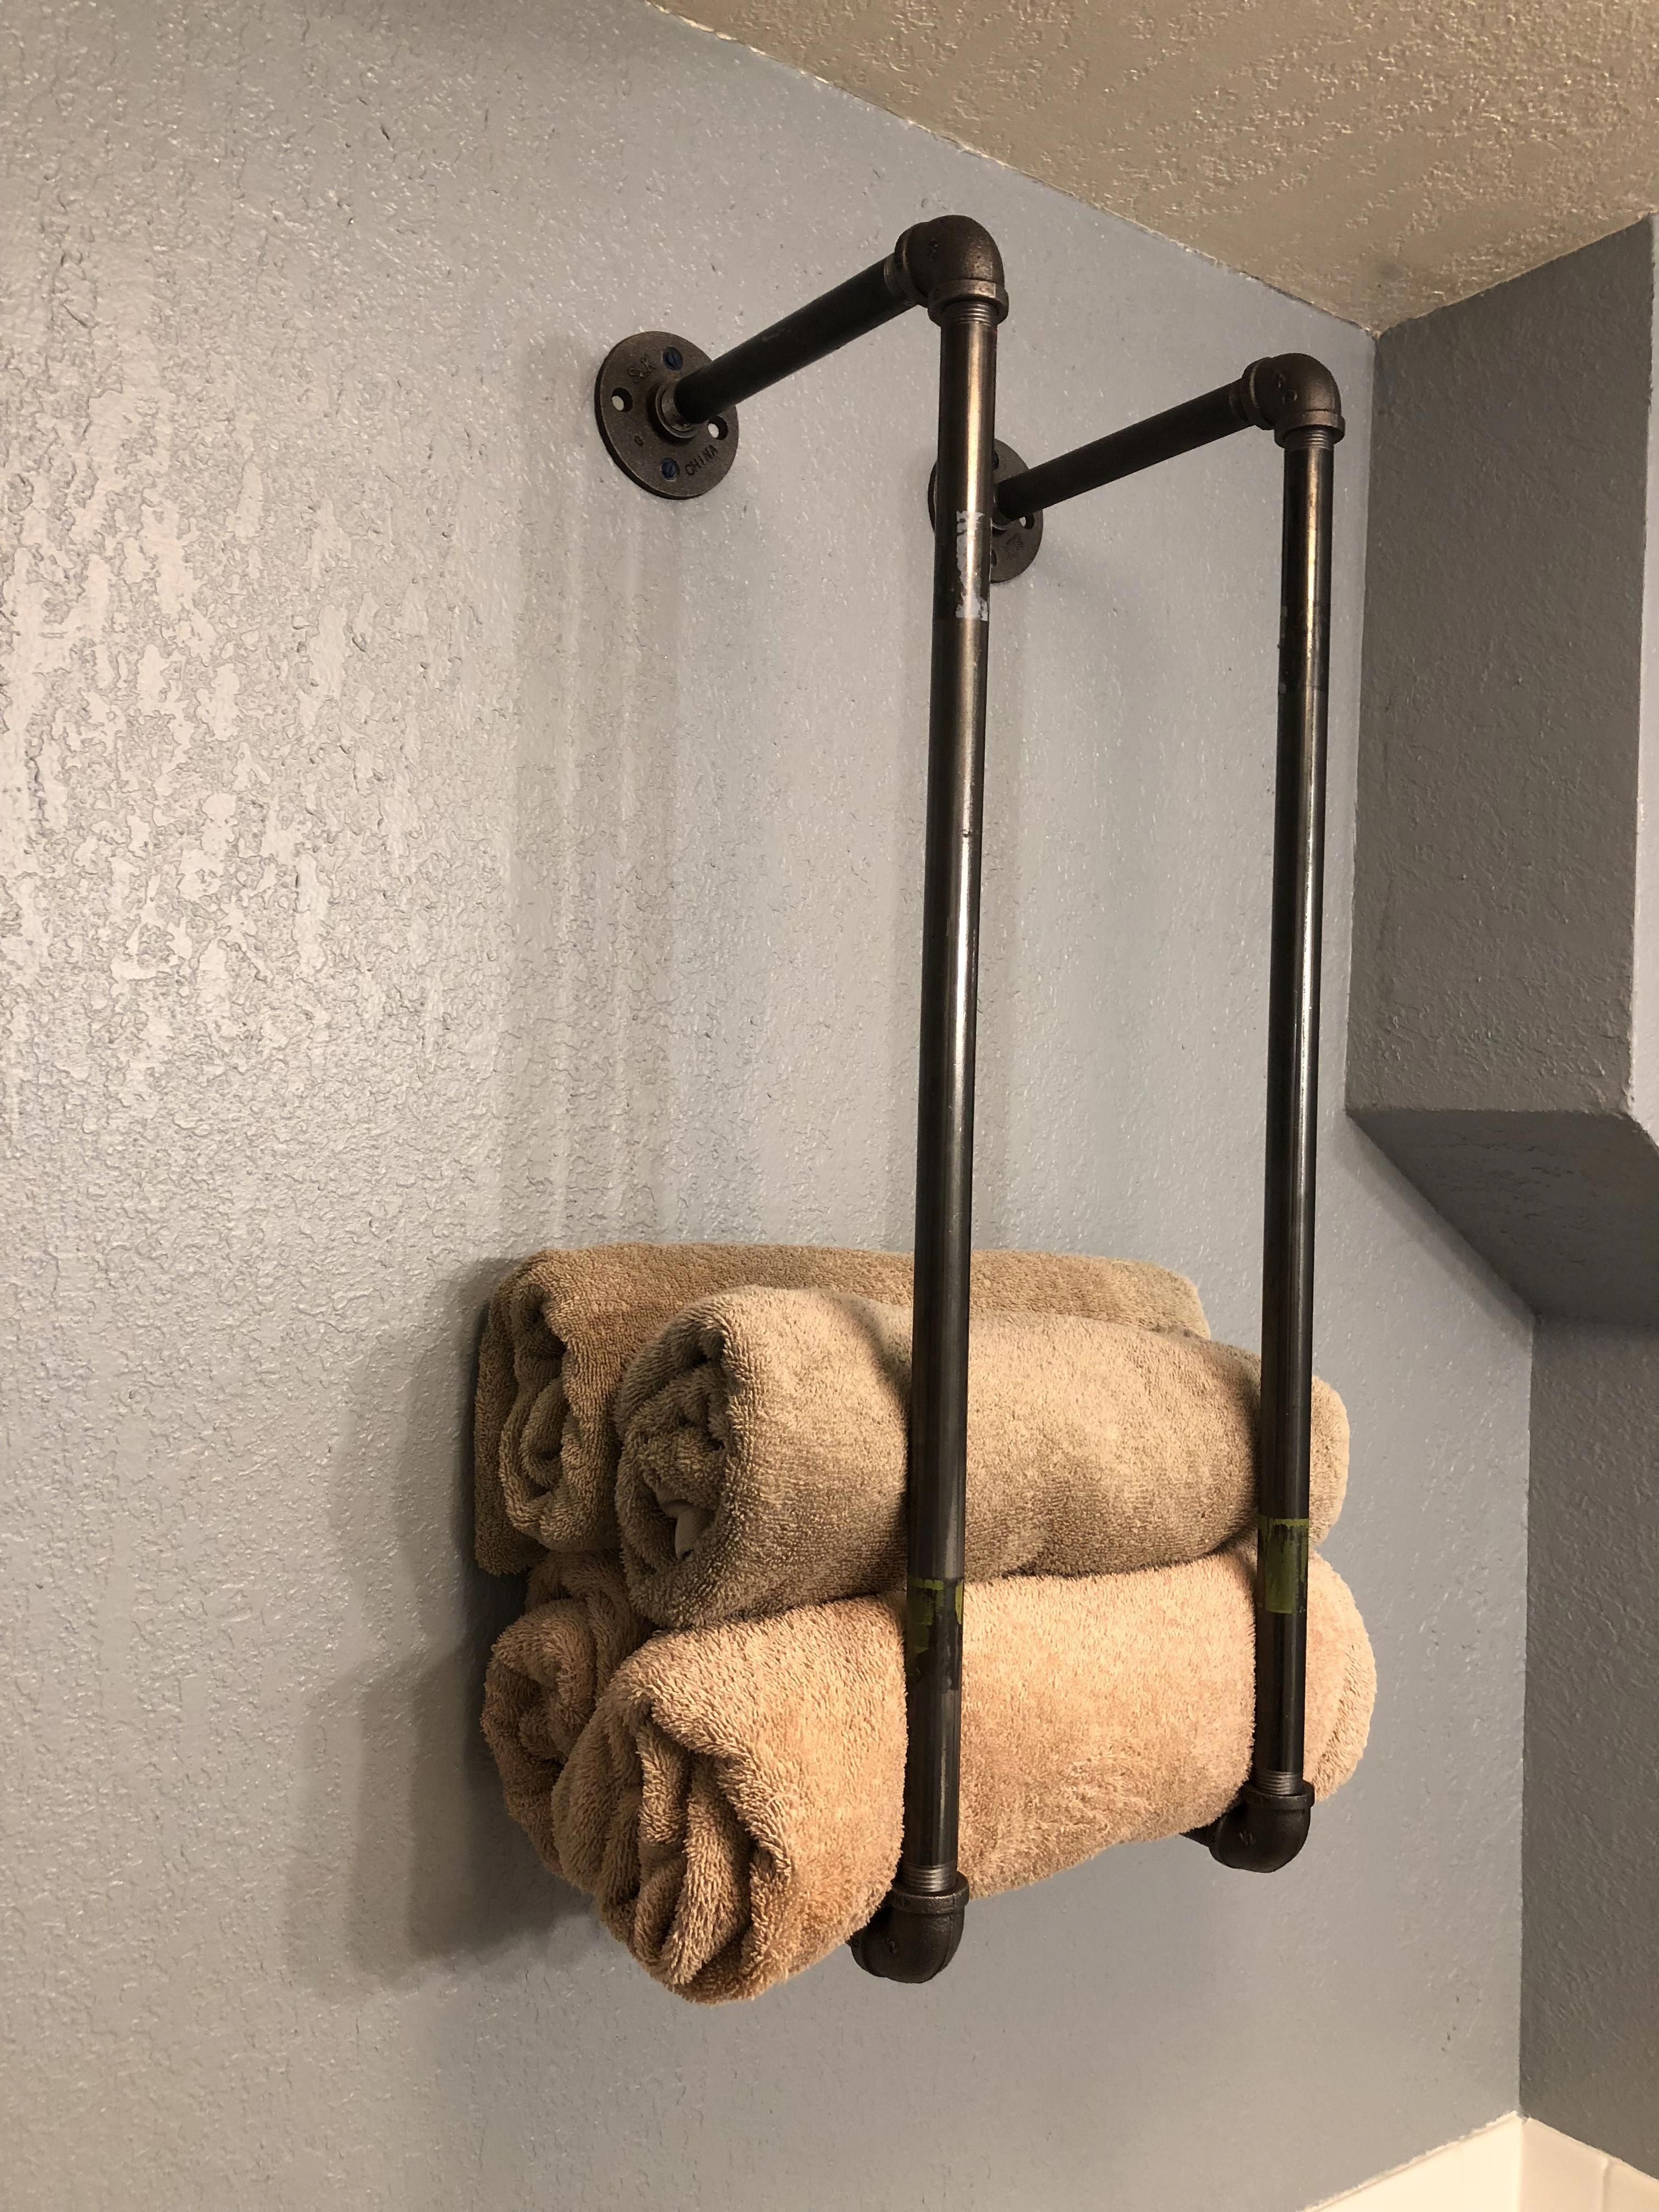 10 Good Resolutions For Toilets In 2020 Towel Storage Towel